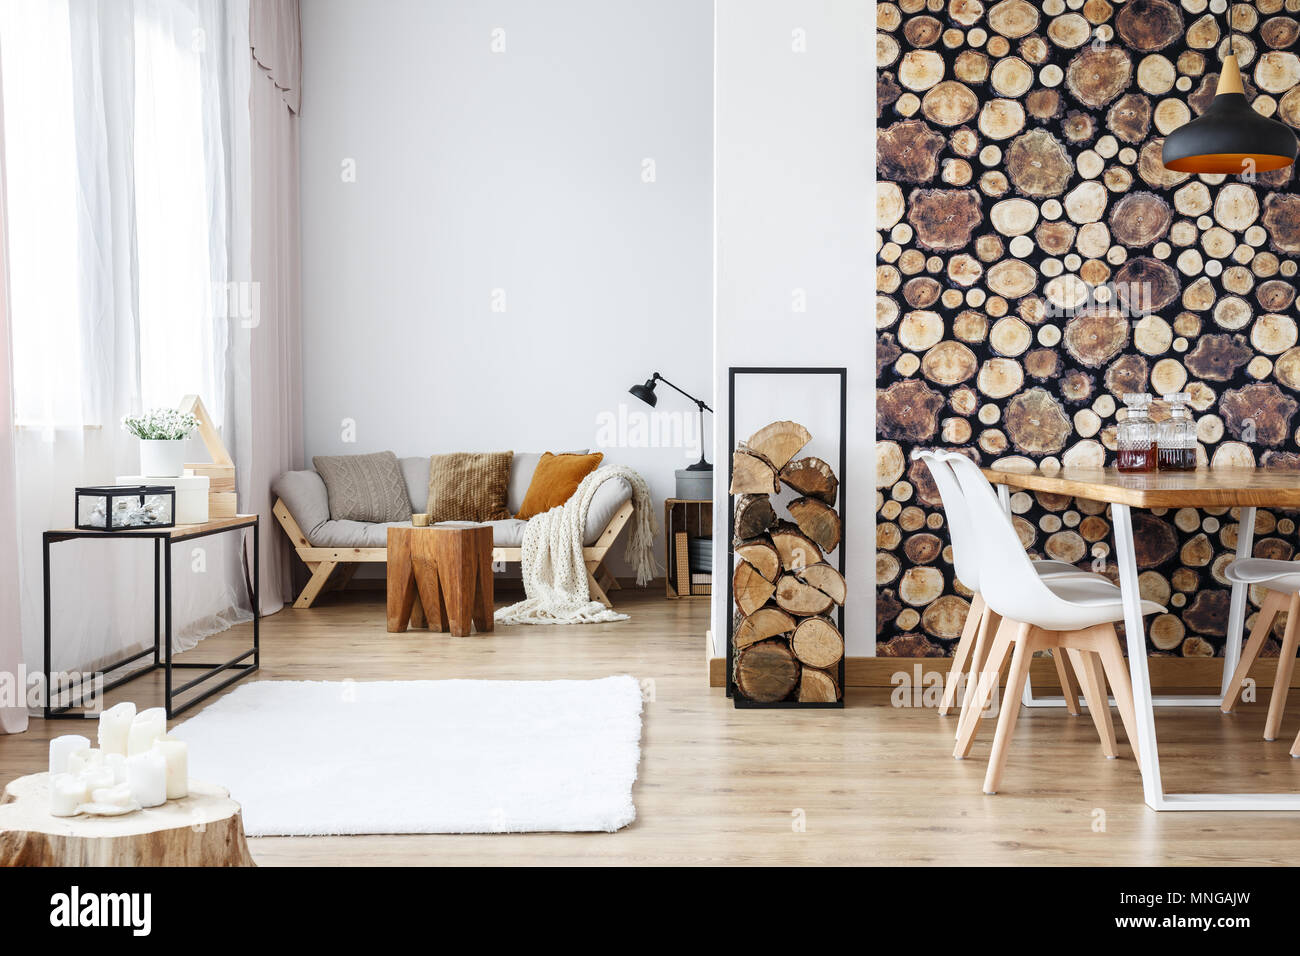 Wooden log texture wallpaper in cozy dining space of white open plan apartment with sofa, rug and tree stump accessories - Stock Image